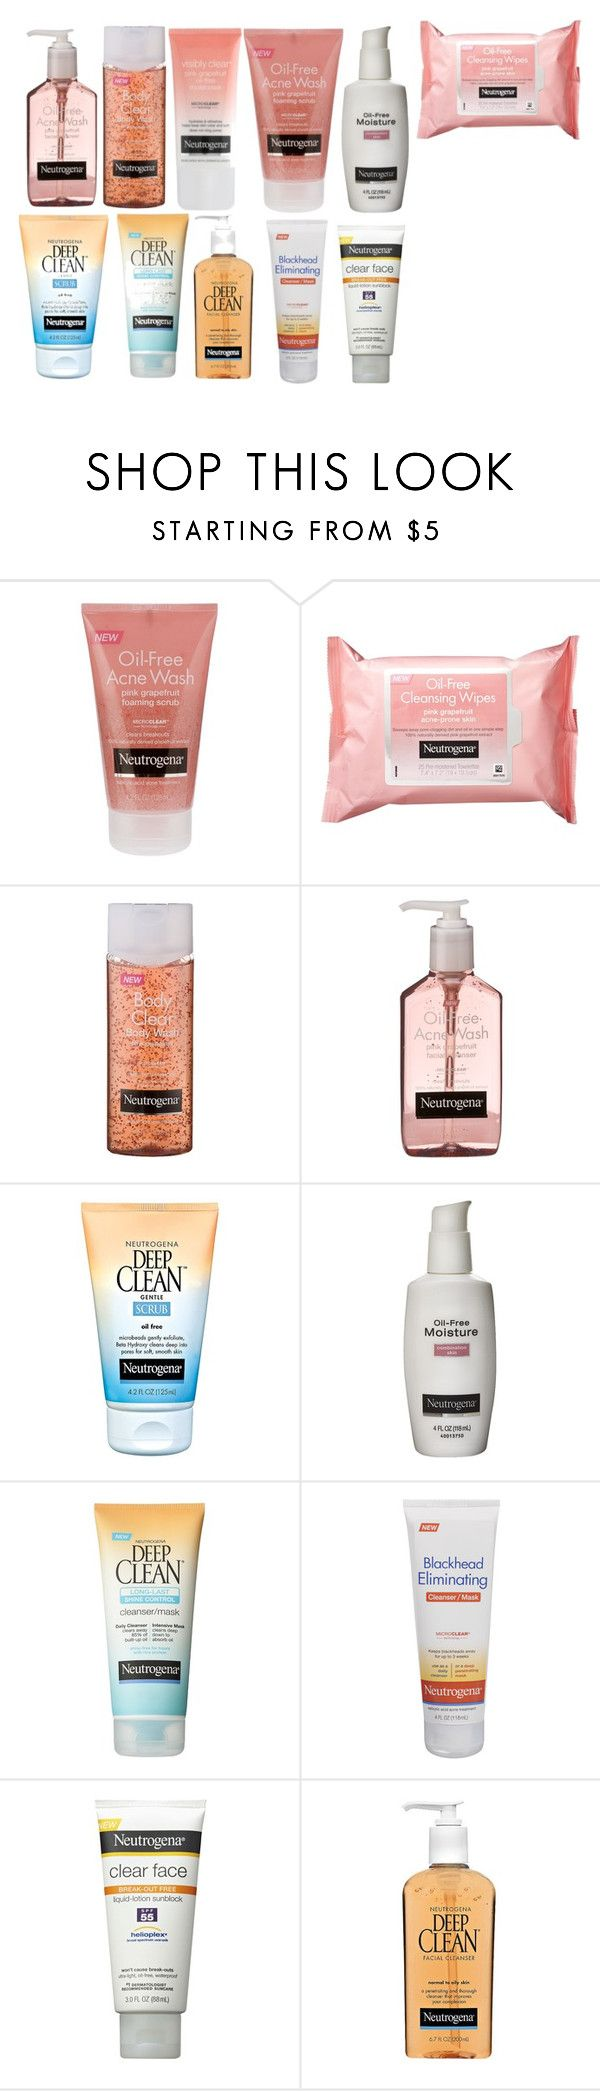 """Neutrogena"" by sweetprep101 ❤ liked on Polyvore featuring beauty and Neutrogena"